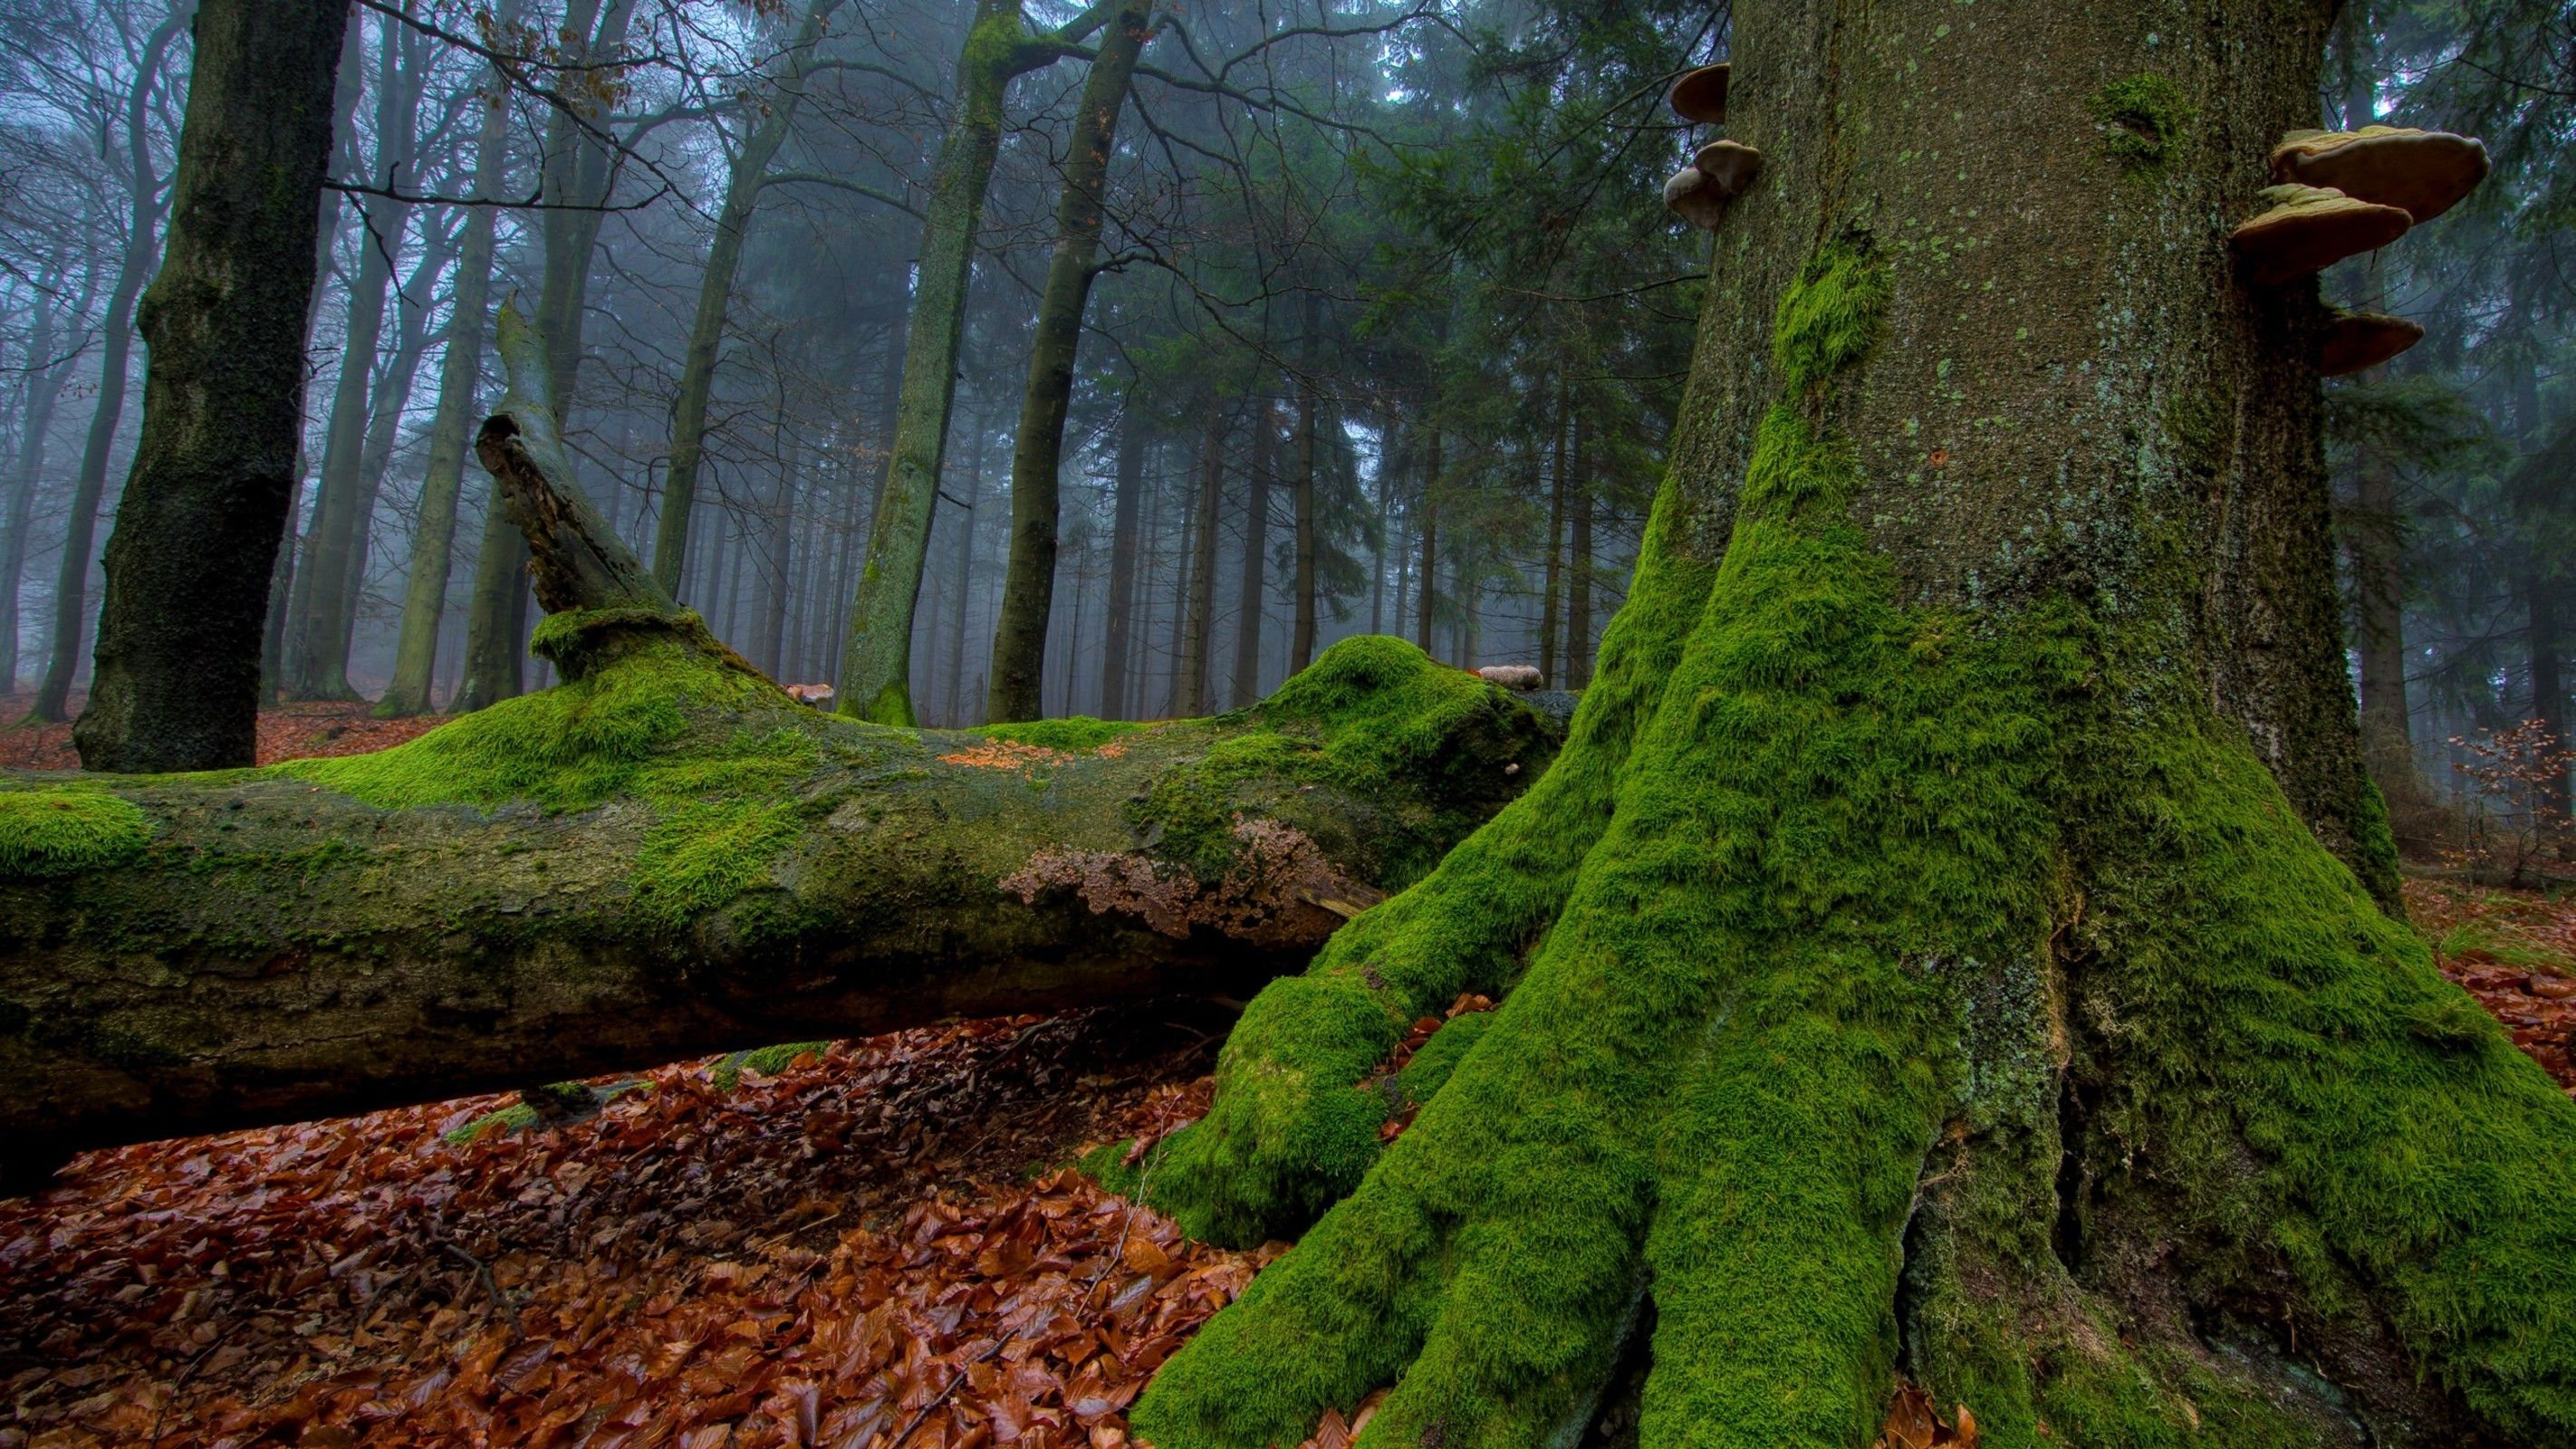 Nature Leaves Forest Moss Wallpaper Tree Wallpaper Forest Wallpaper Autumn Trees